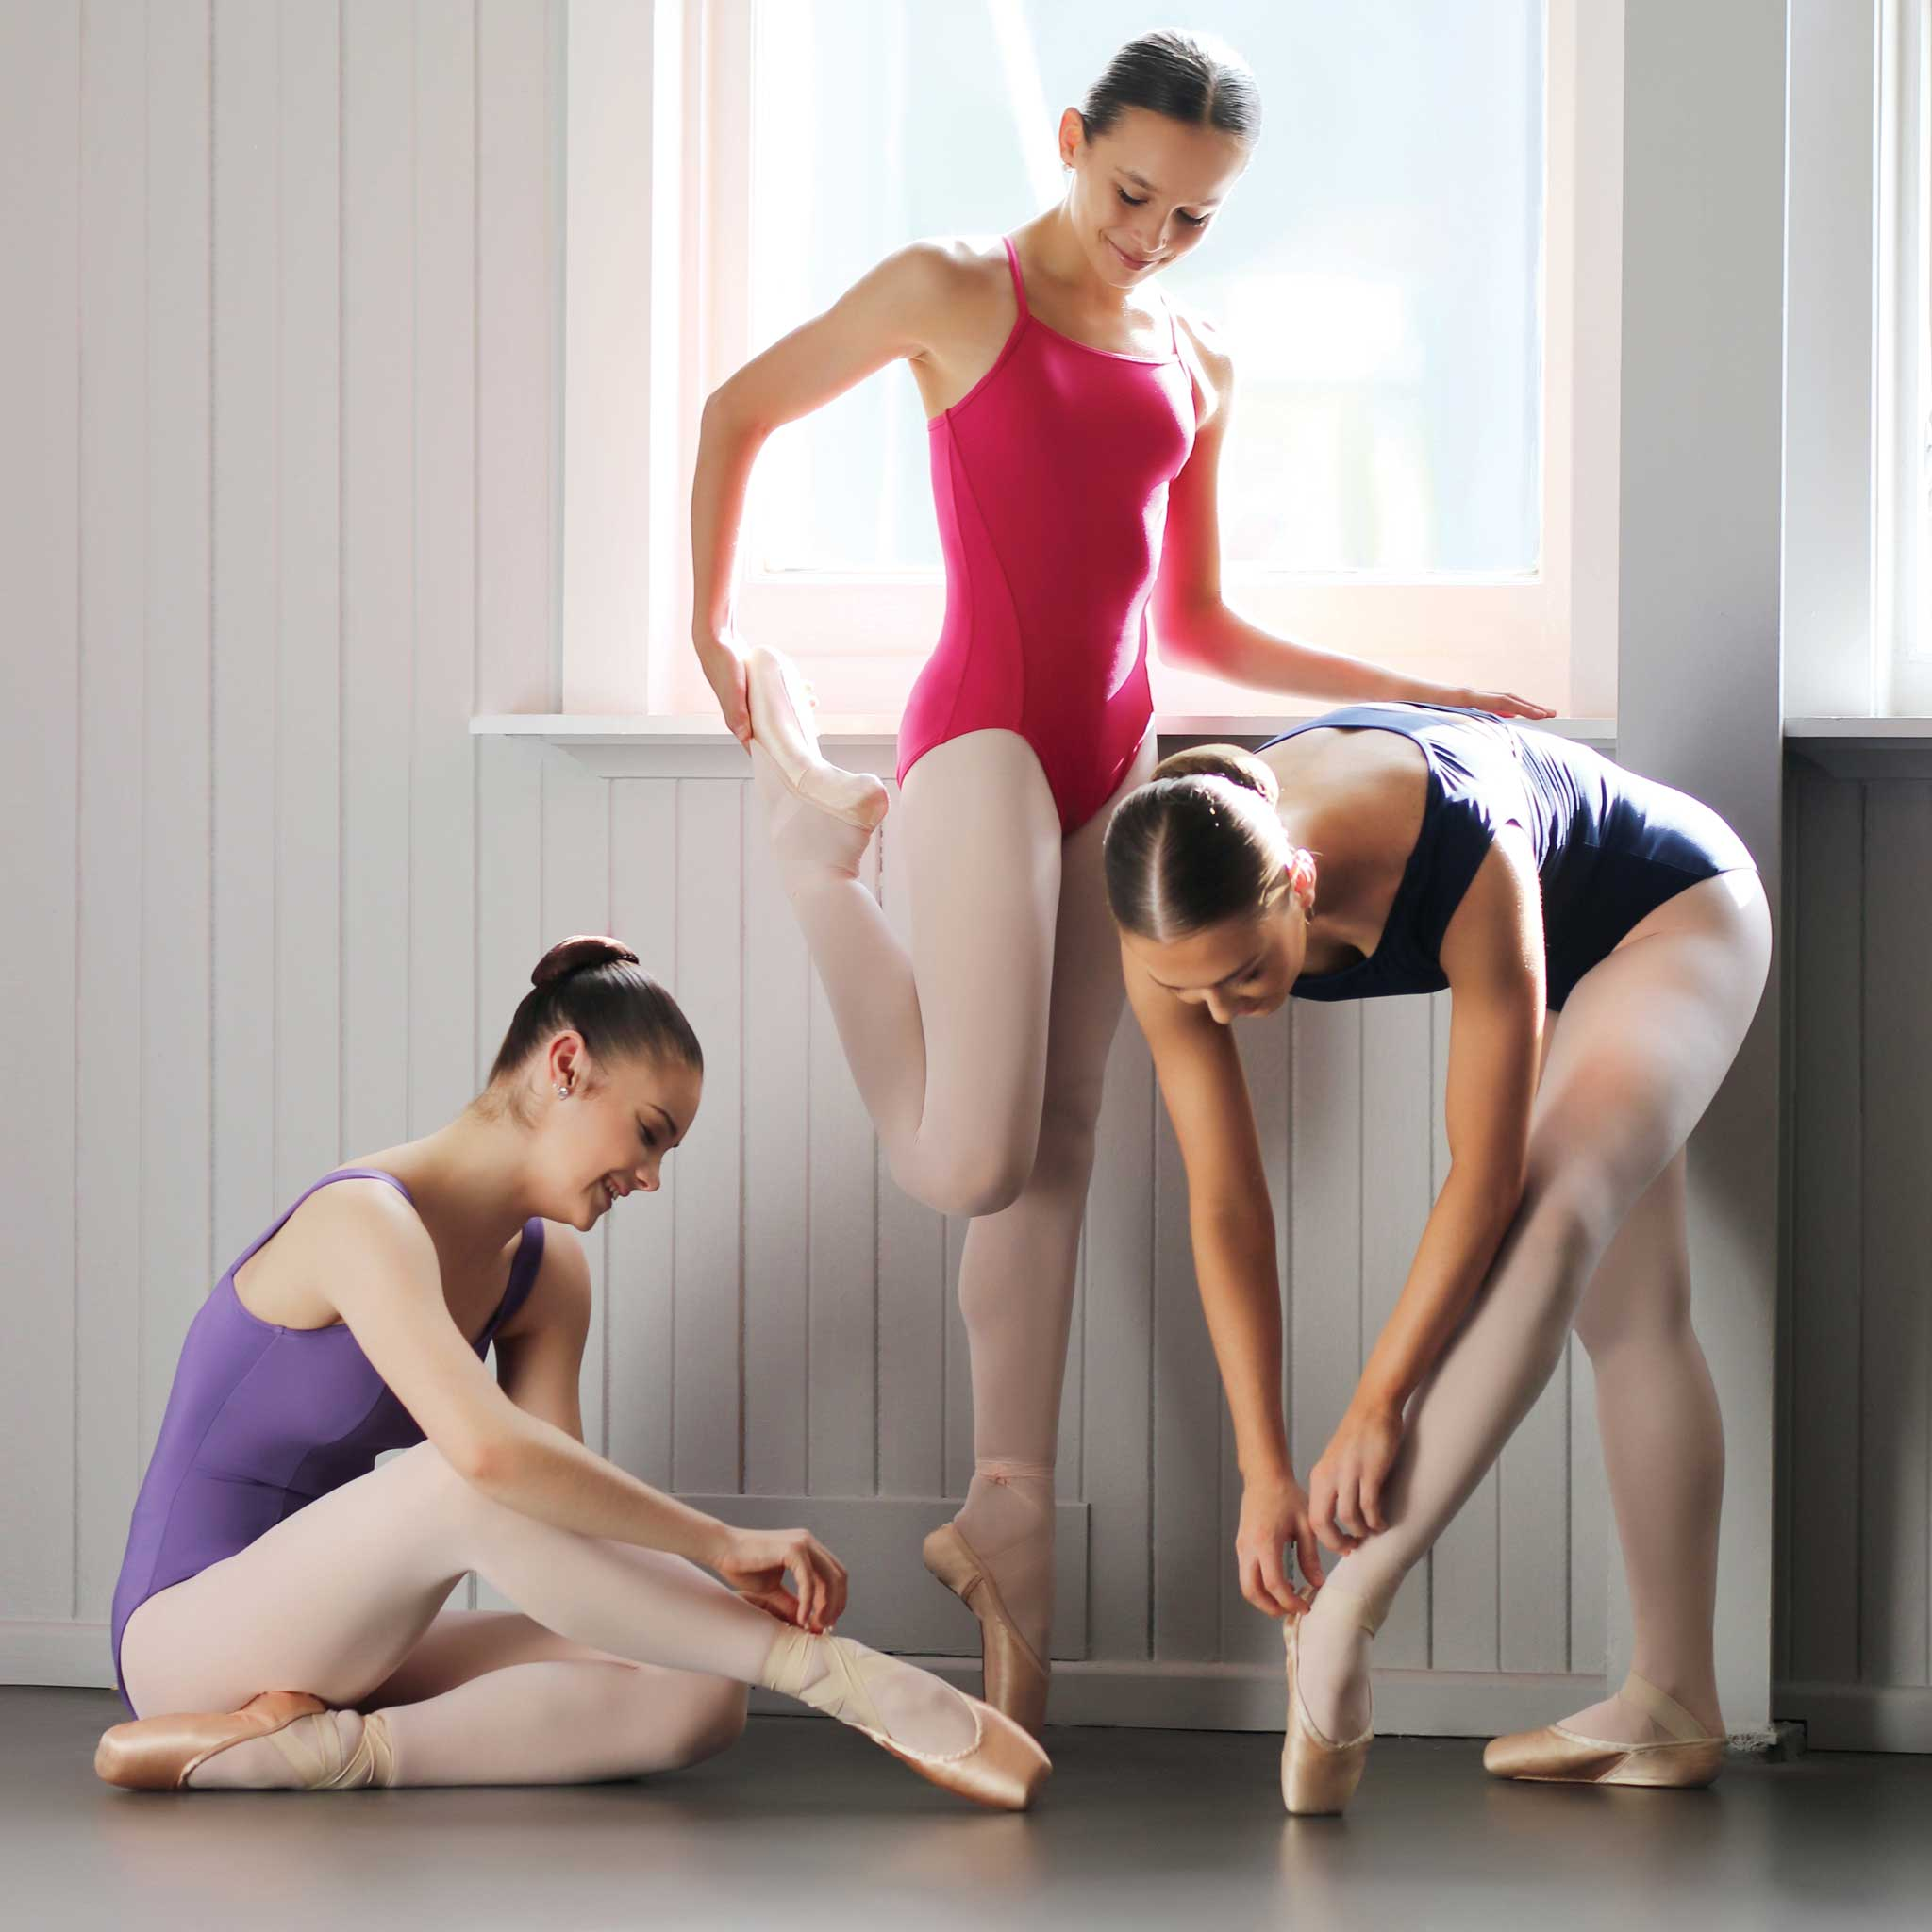 Three dancers putting on pointe shoes and wearing three different dance leotards.